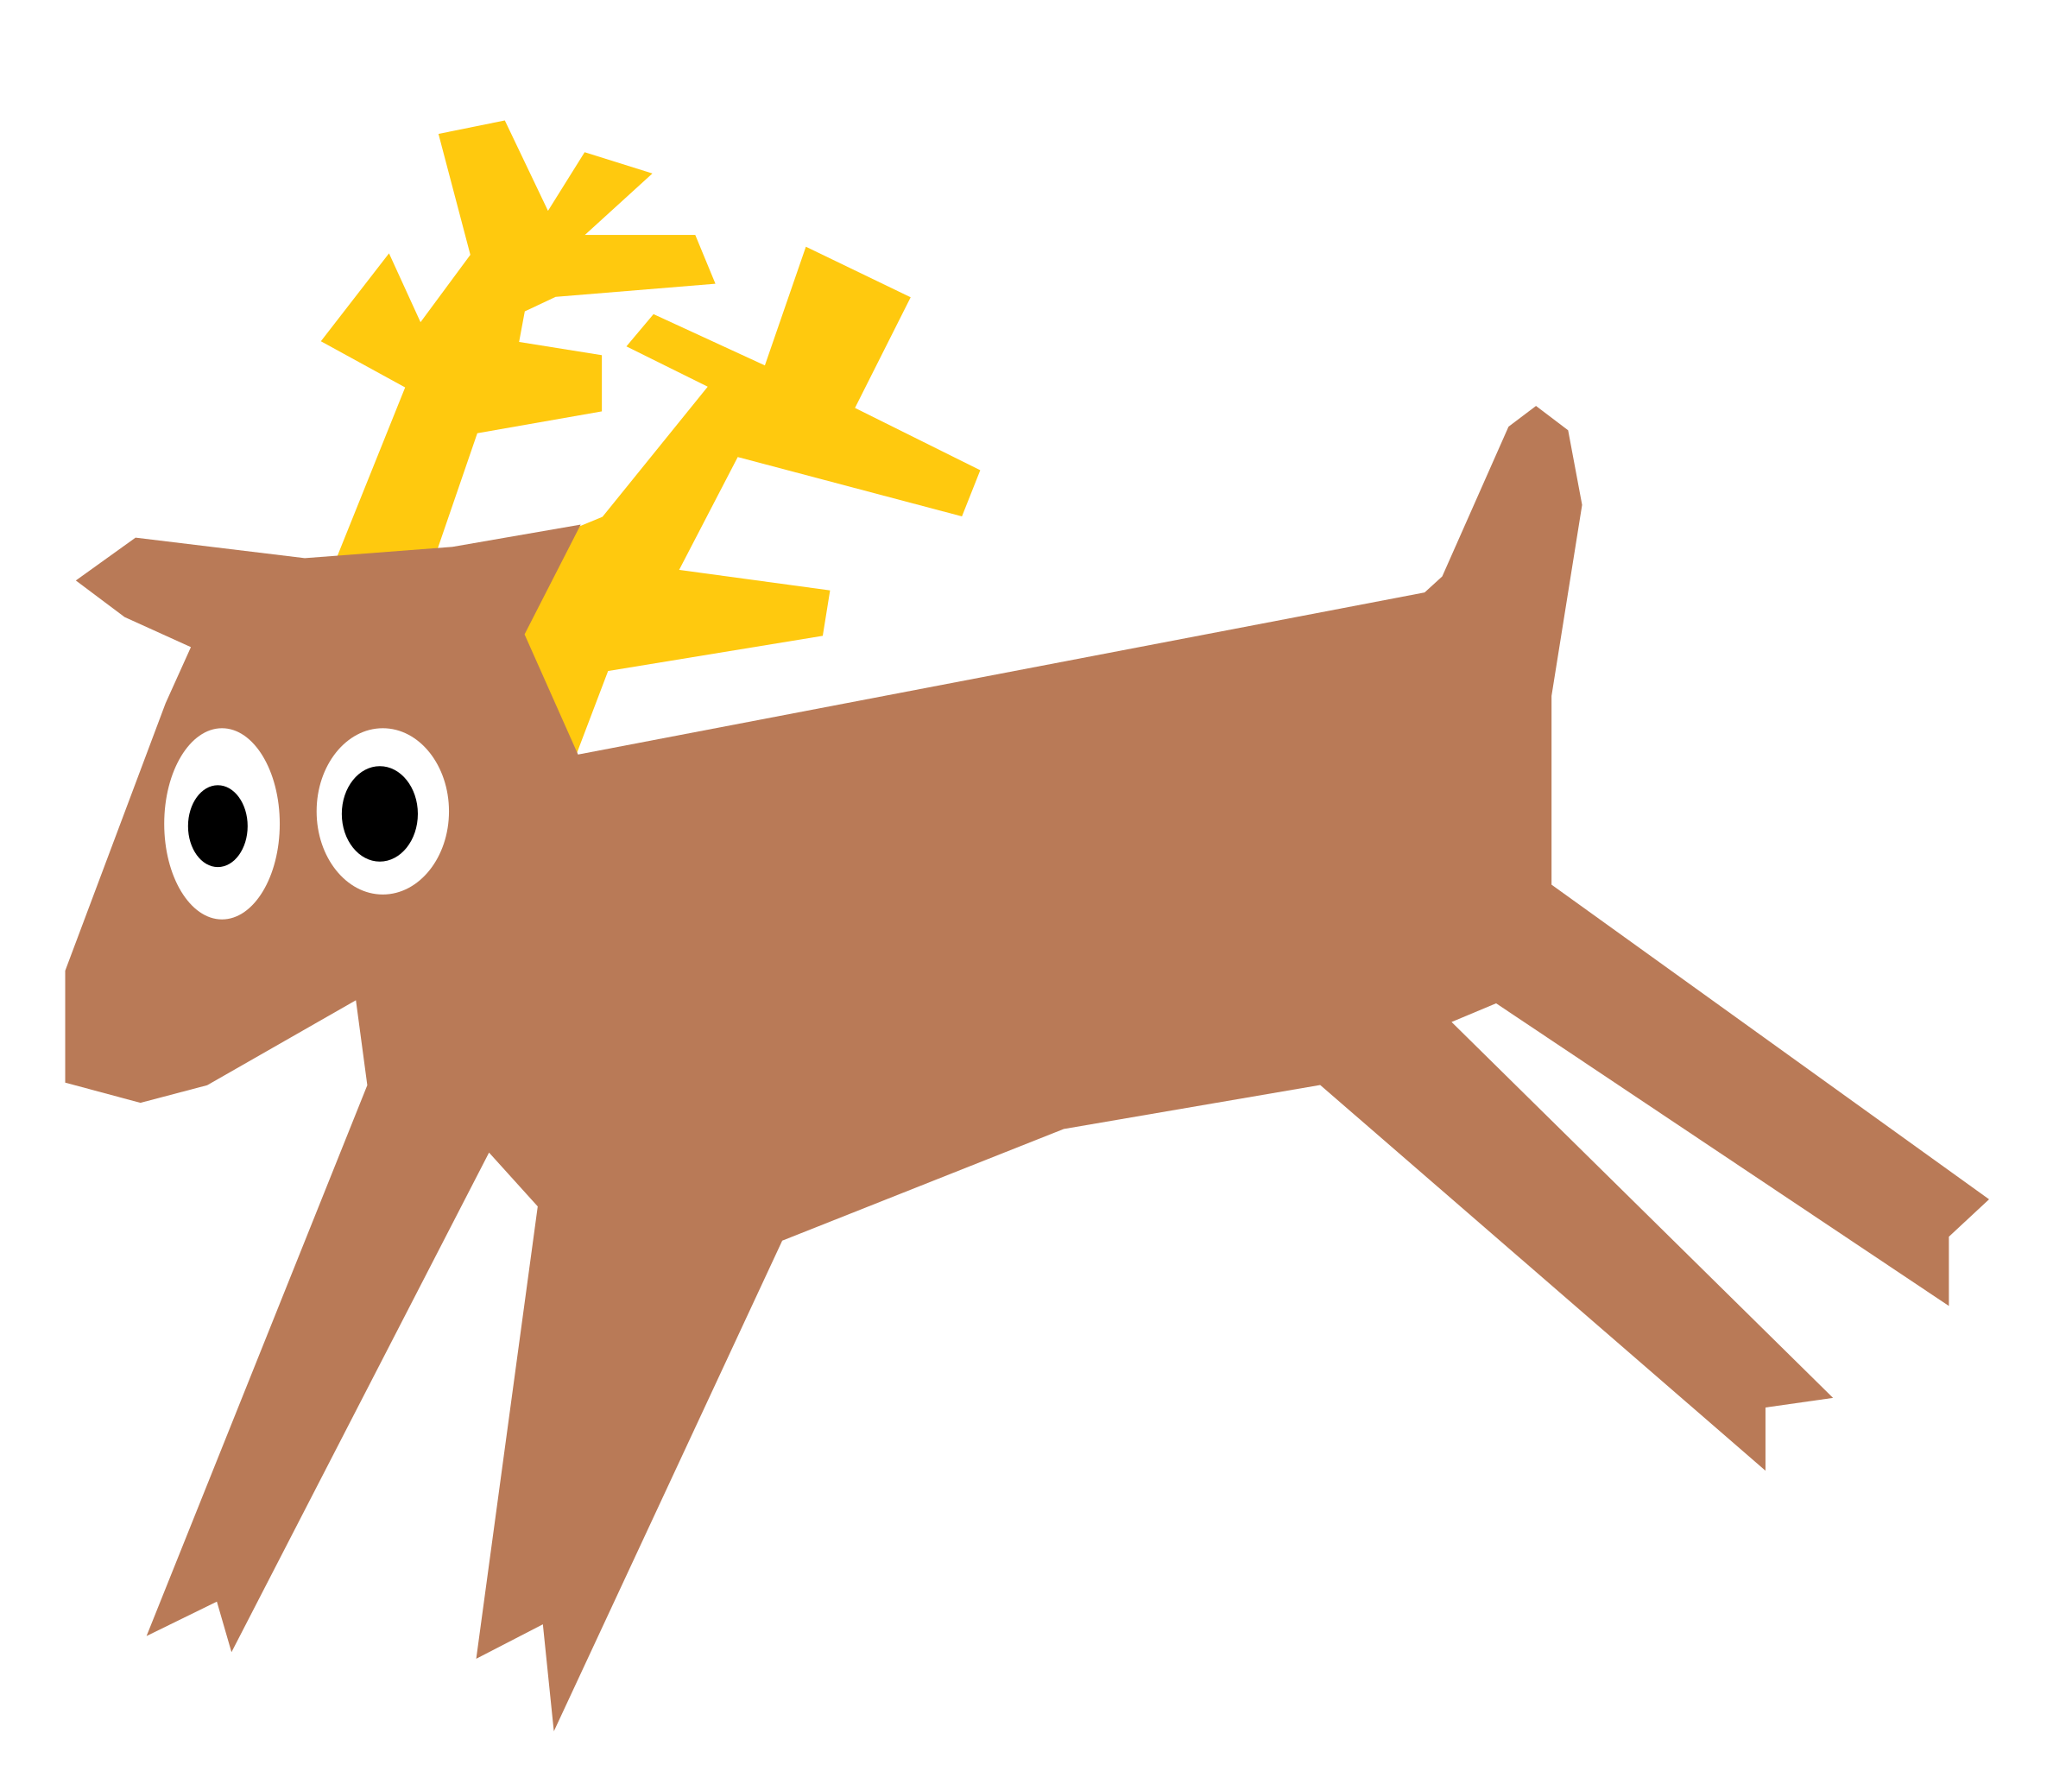 Deer refixed by Lazur URH